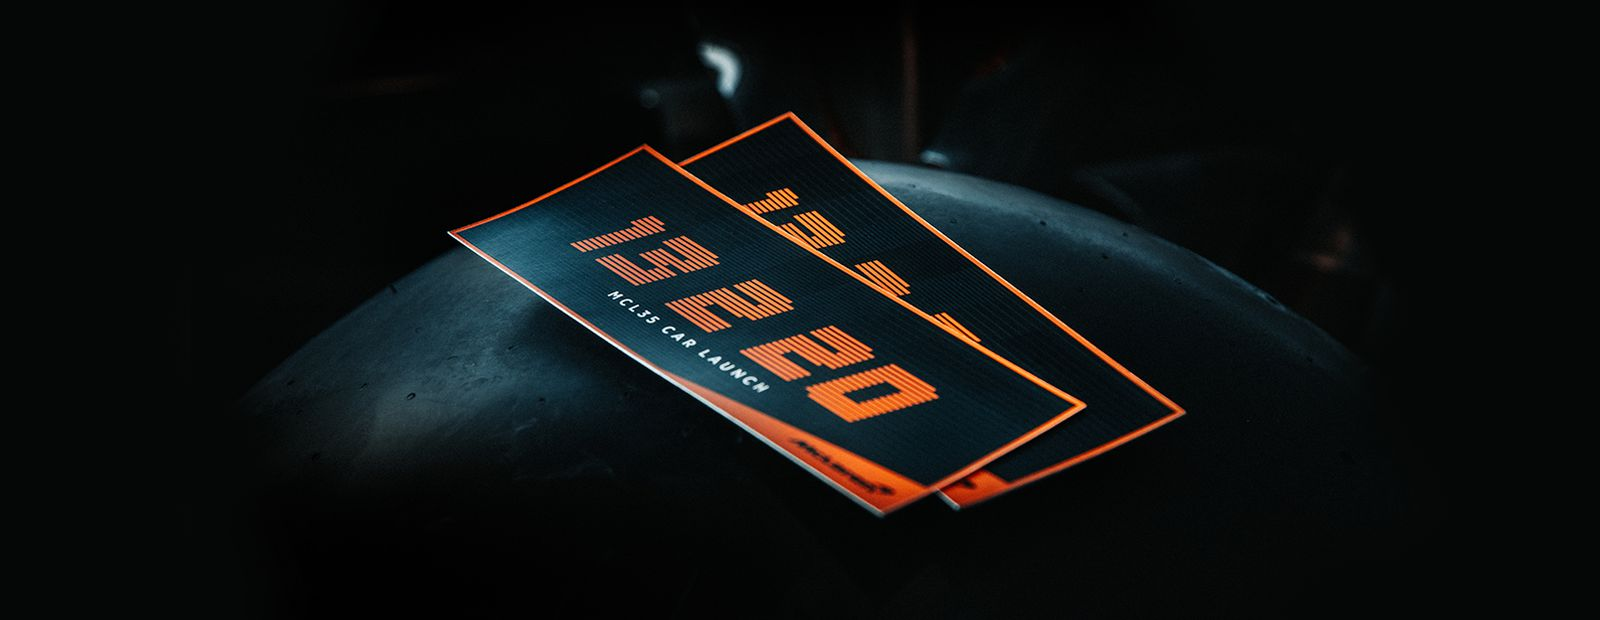 Be part of the MCL35 car launch